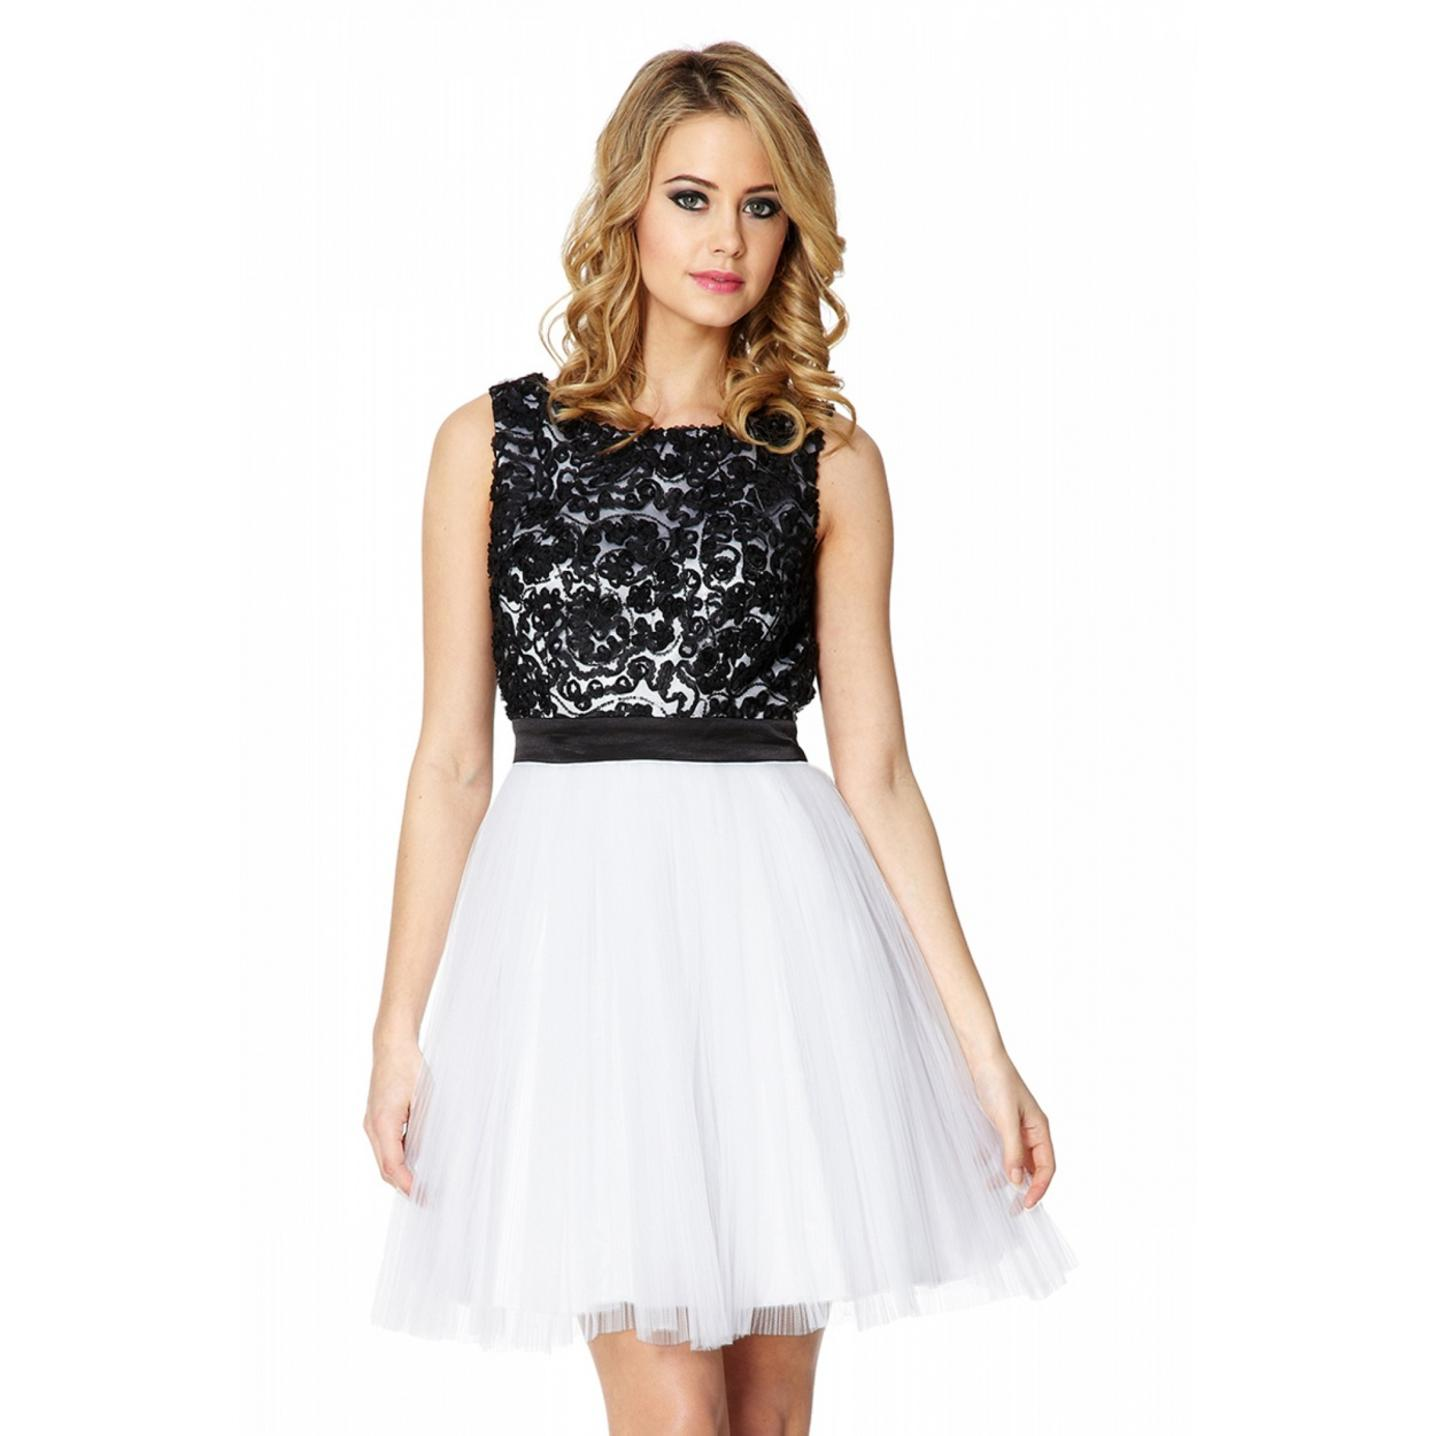 Lace Dress Black And White And Clothes Review – Always Fashion